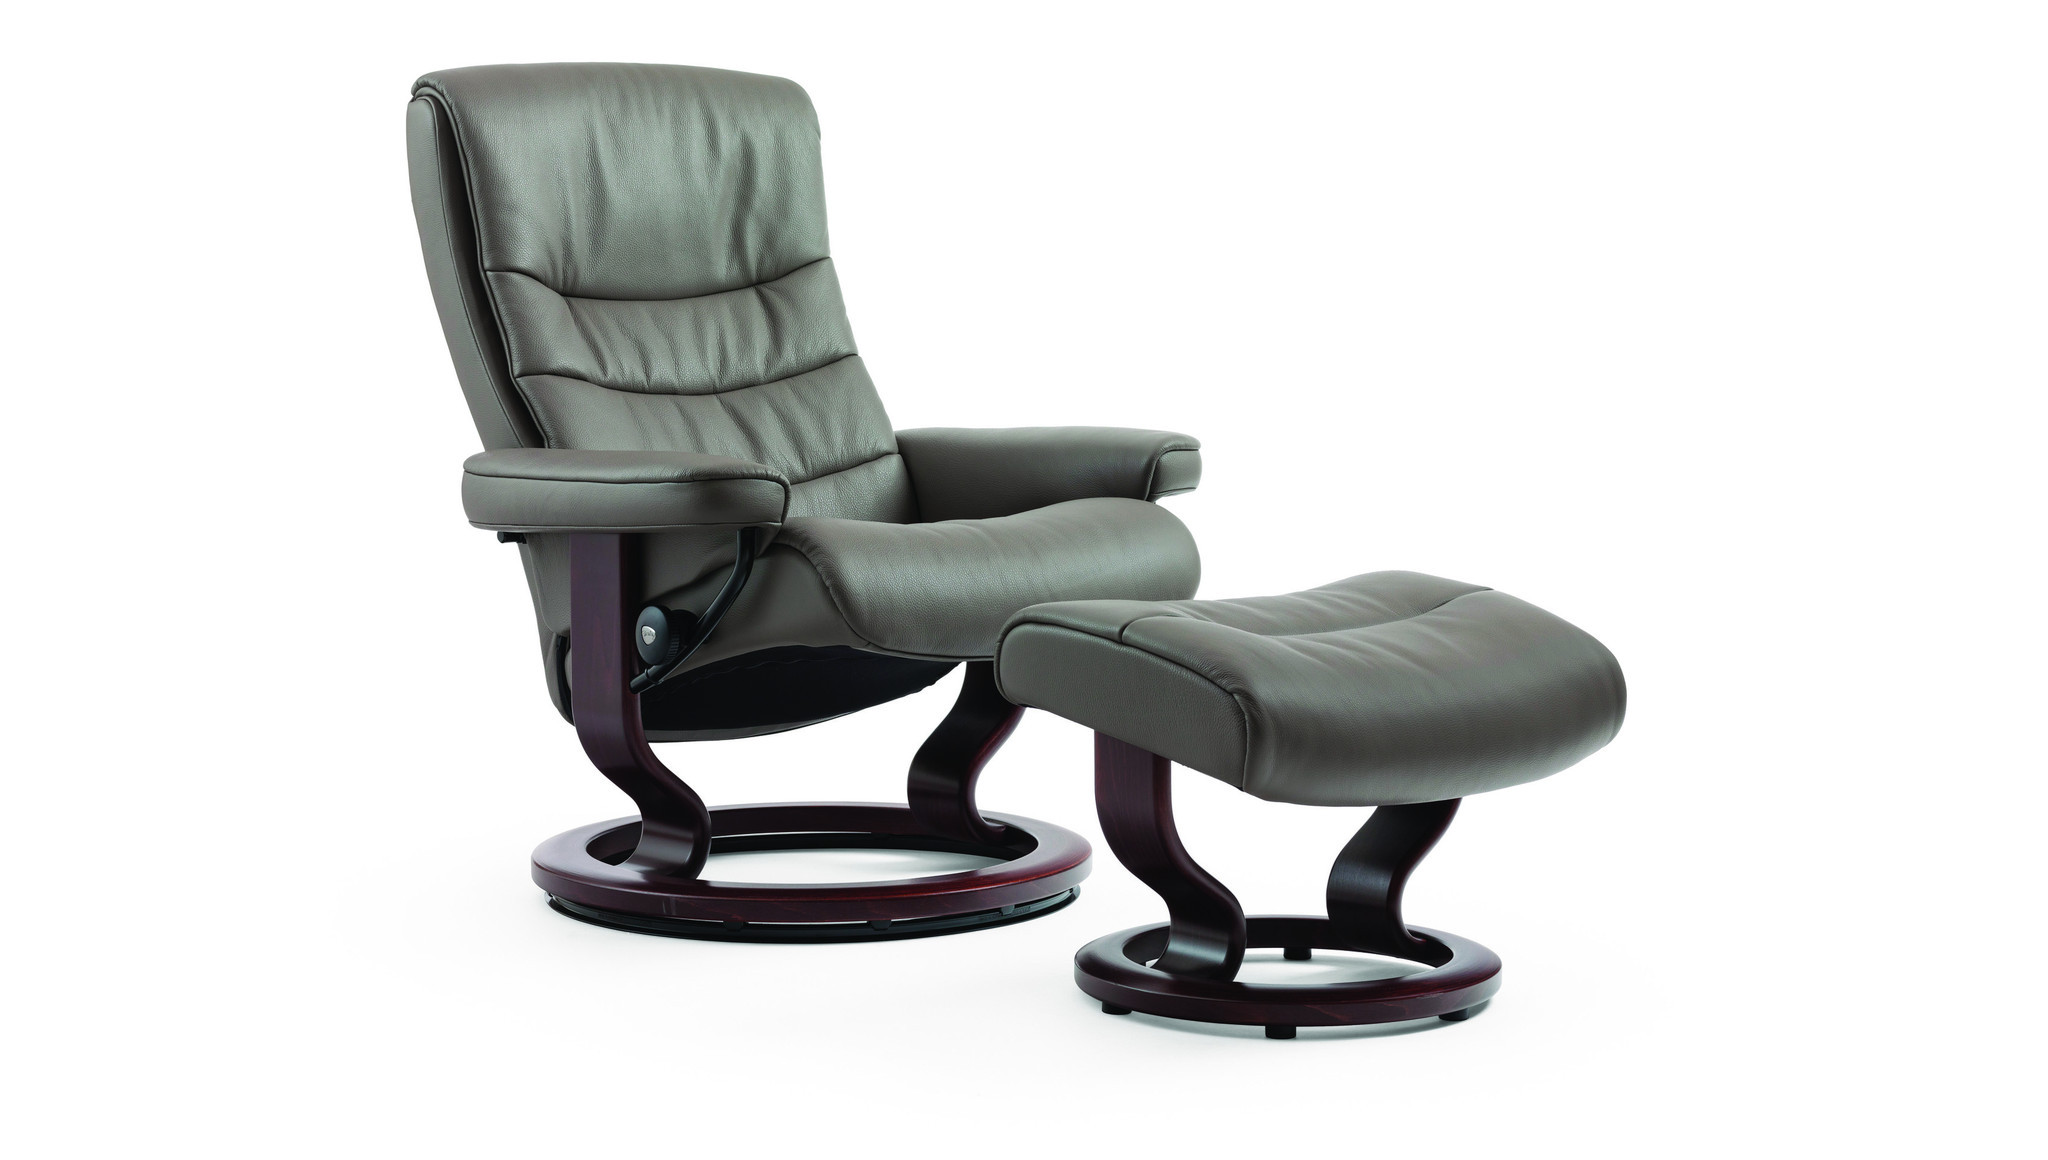 Sears Recliners | Sears Lazy Boy Recliner | Recliner Rocker Chair